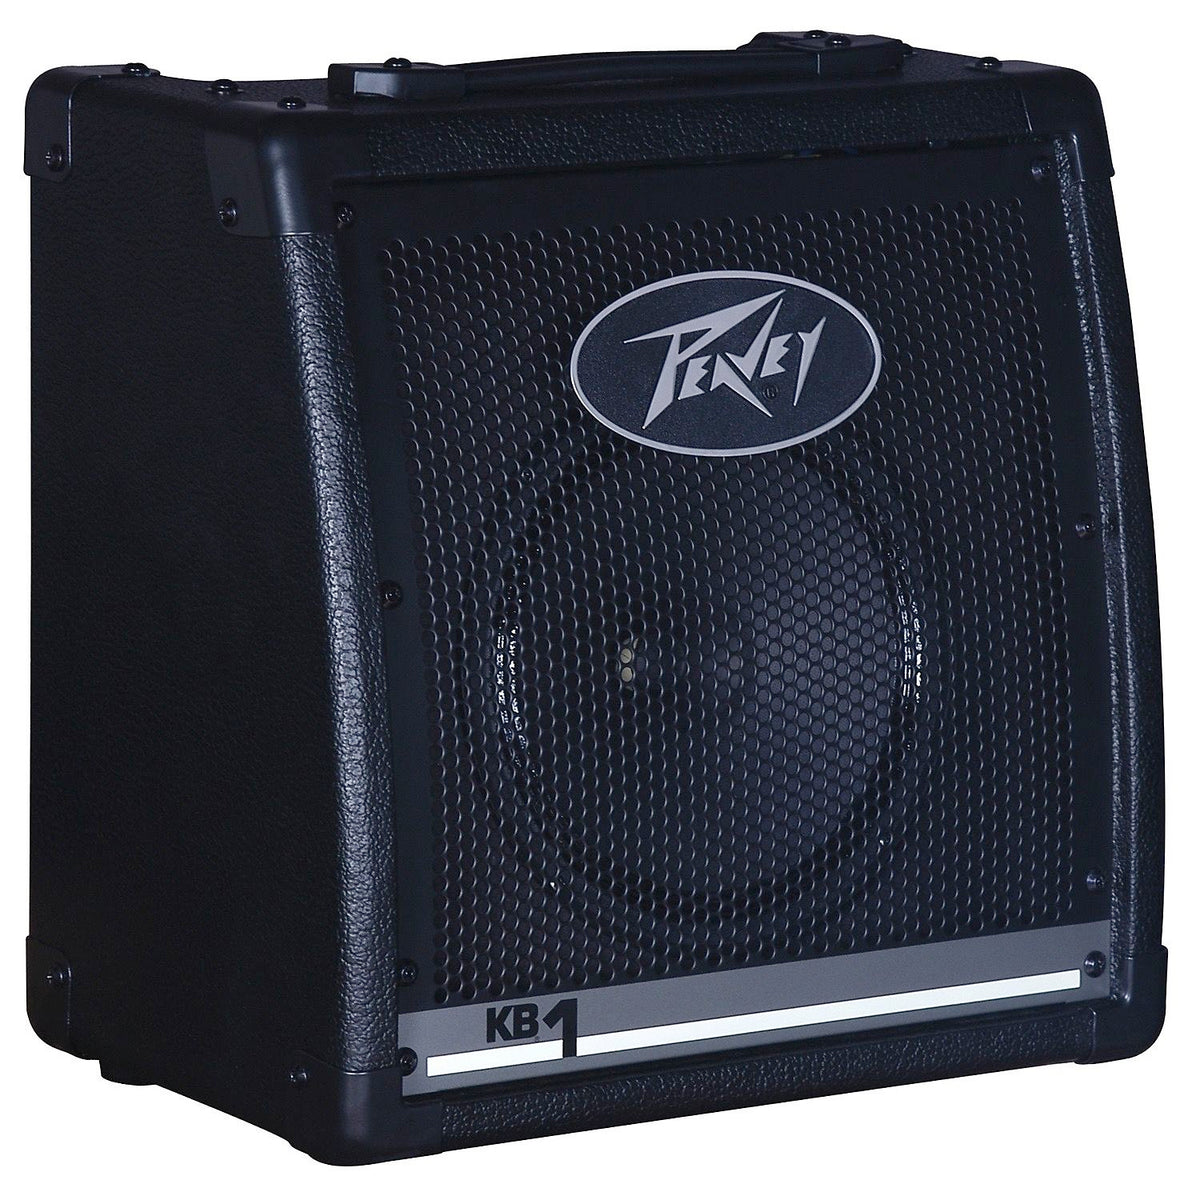 Peavey KB1 2-Channel Keyboard Amplifier (20 Watts, 1x8 Inch)